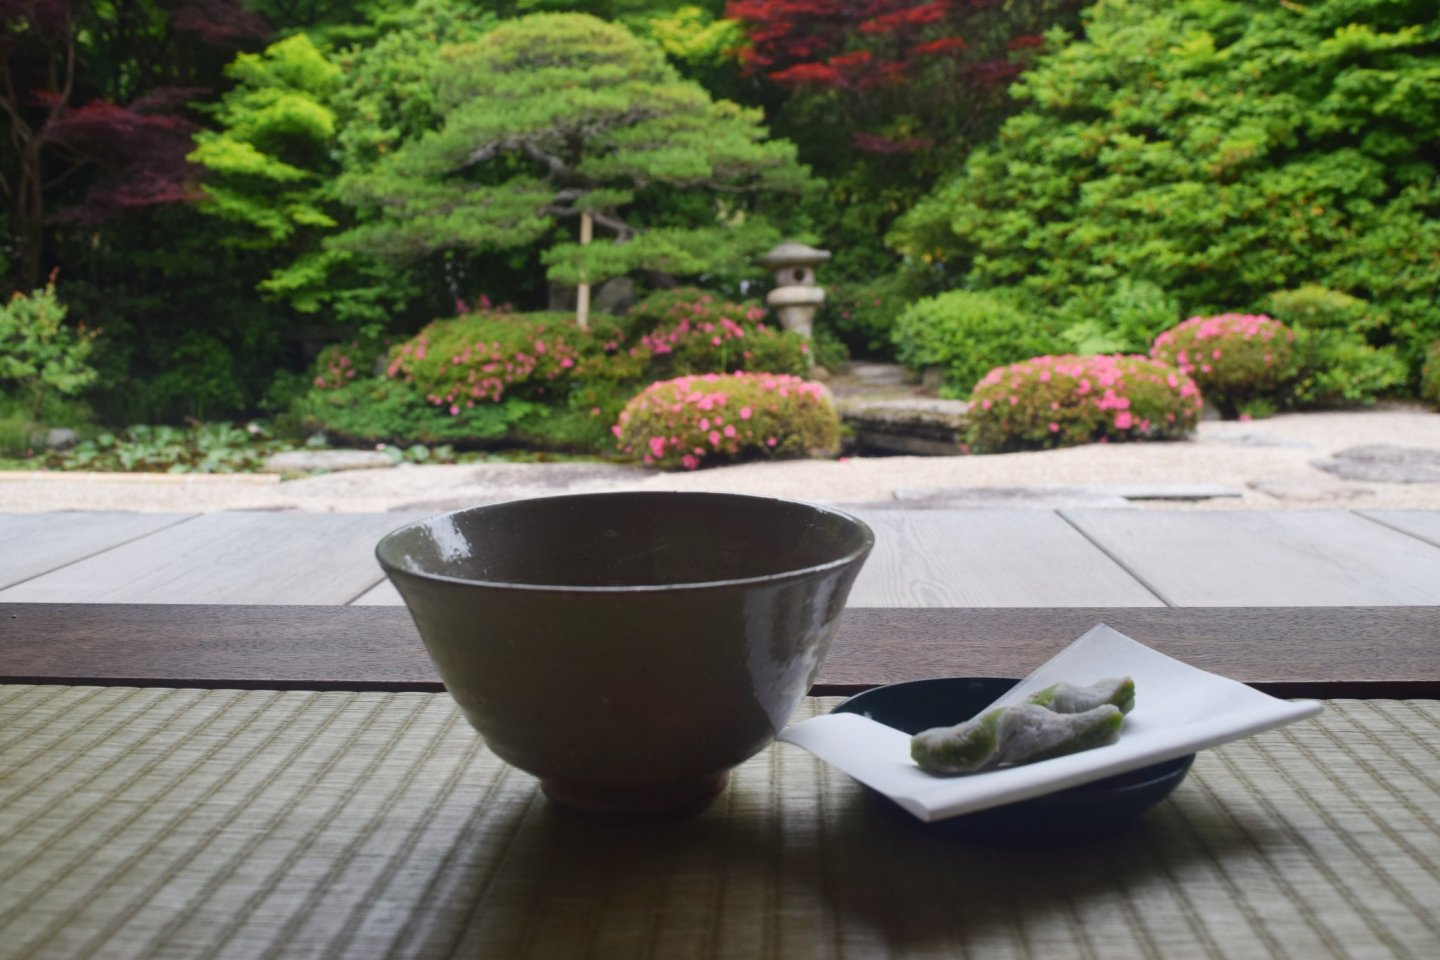 The temple grounds boast a tea-house with beautiful garden views